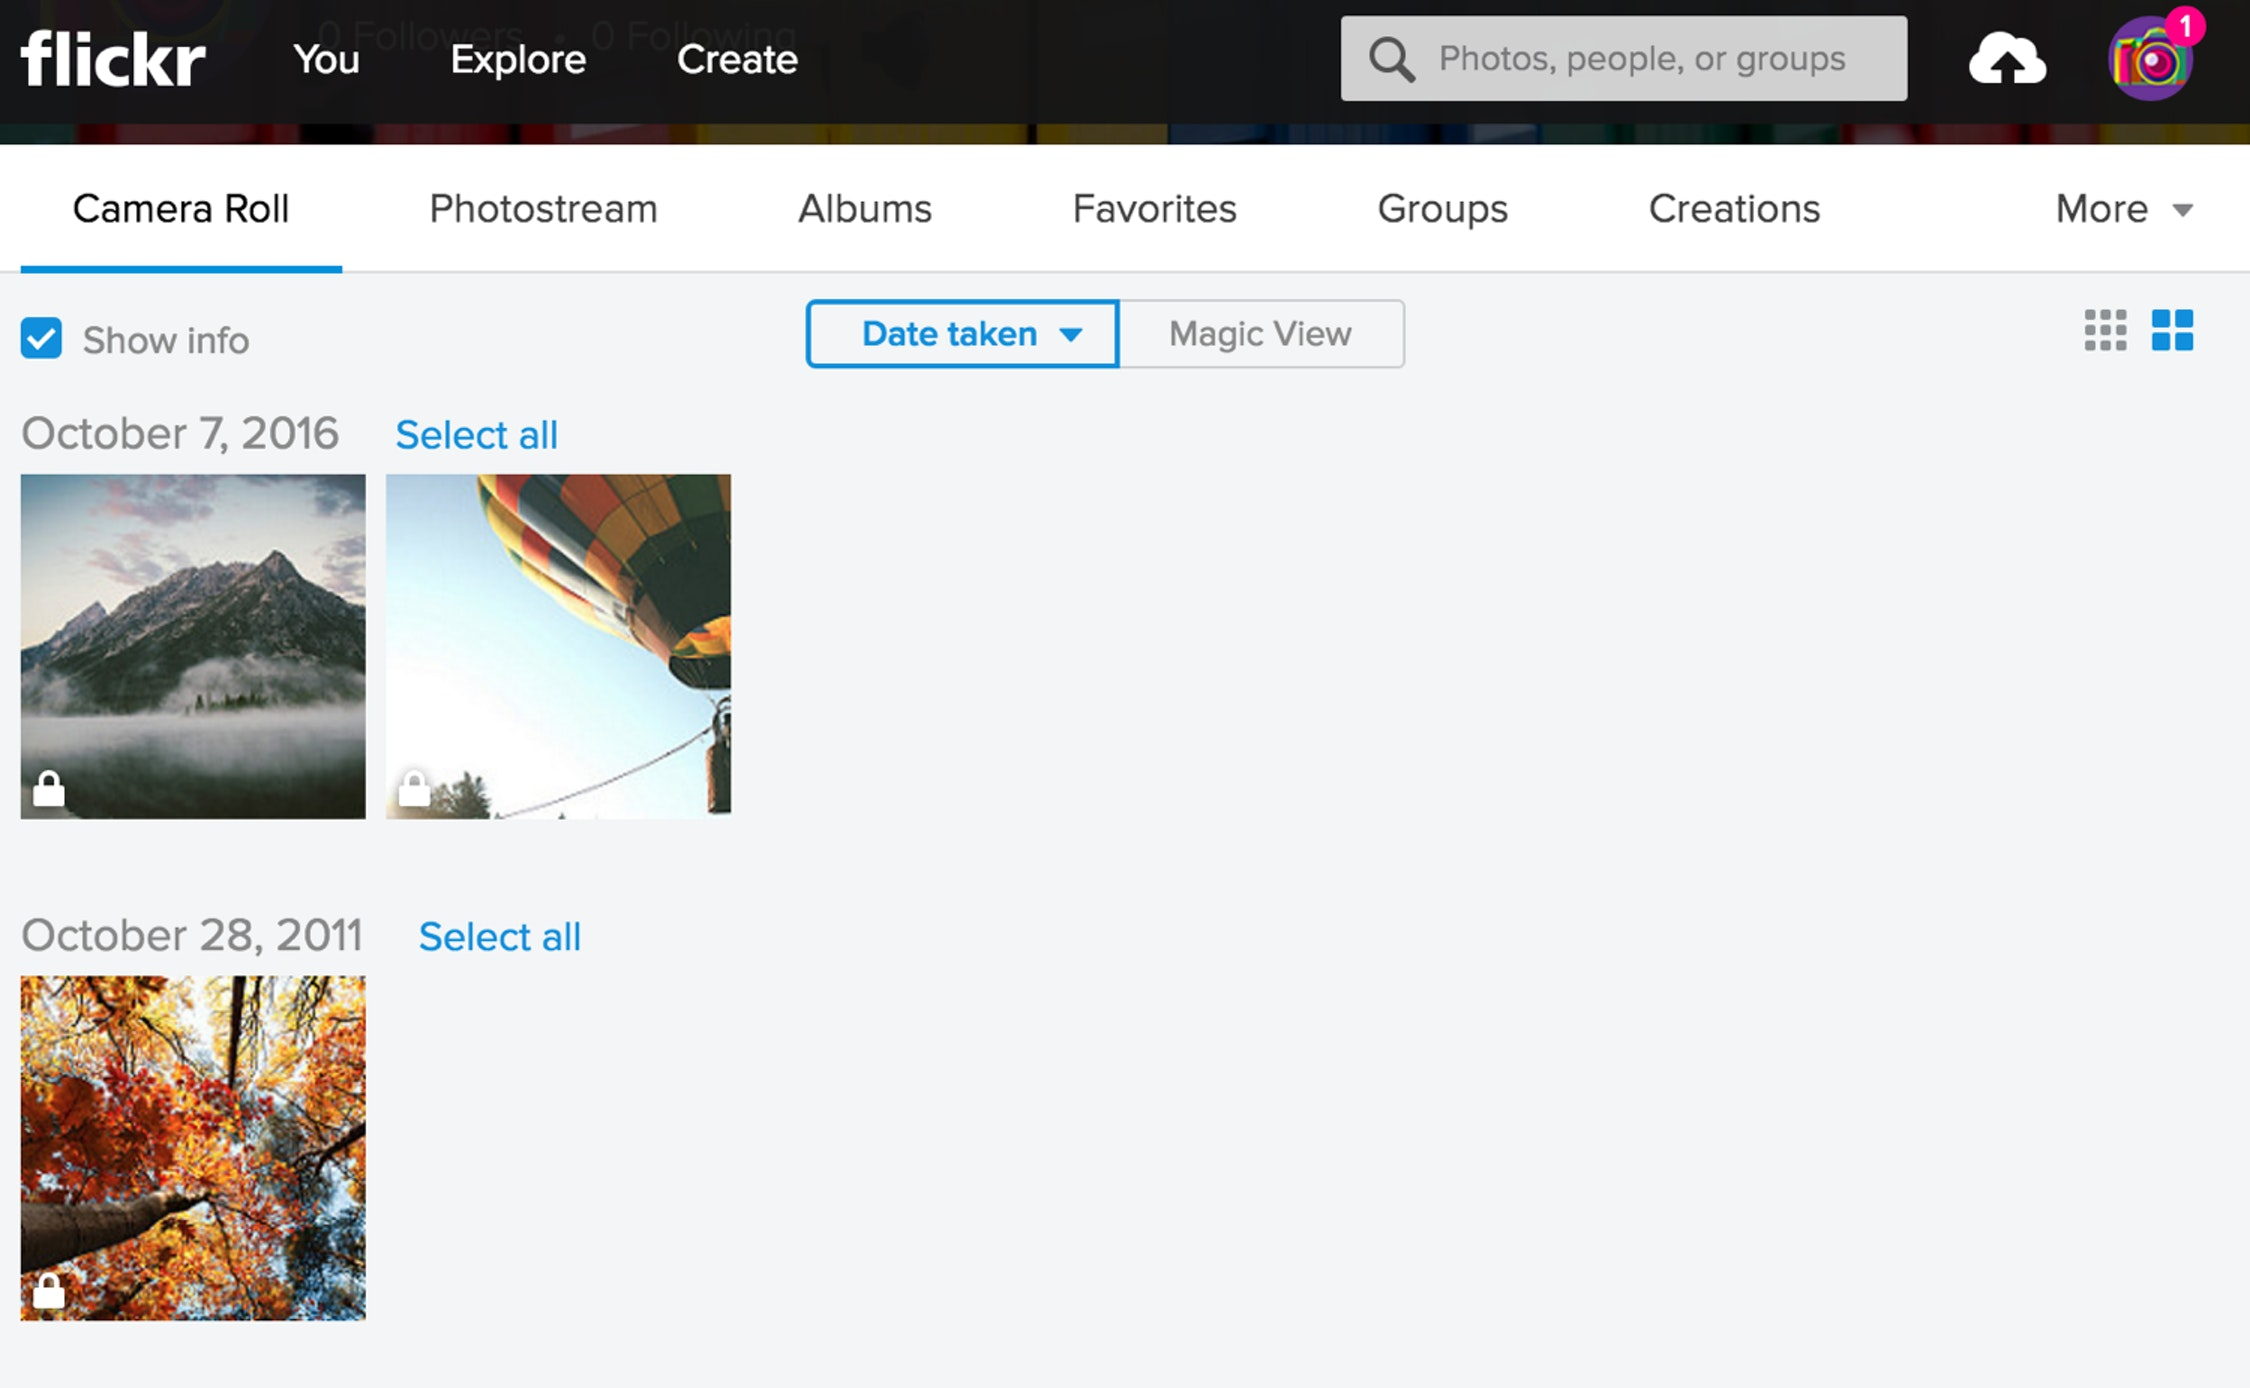 An image shows Flickr's main interface.